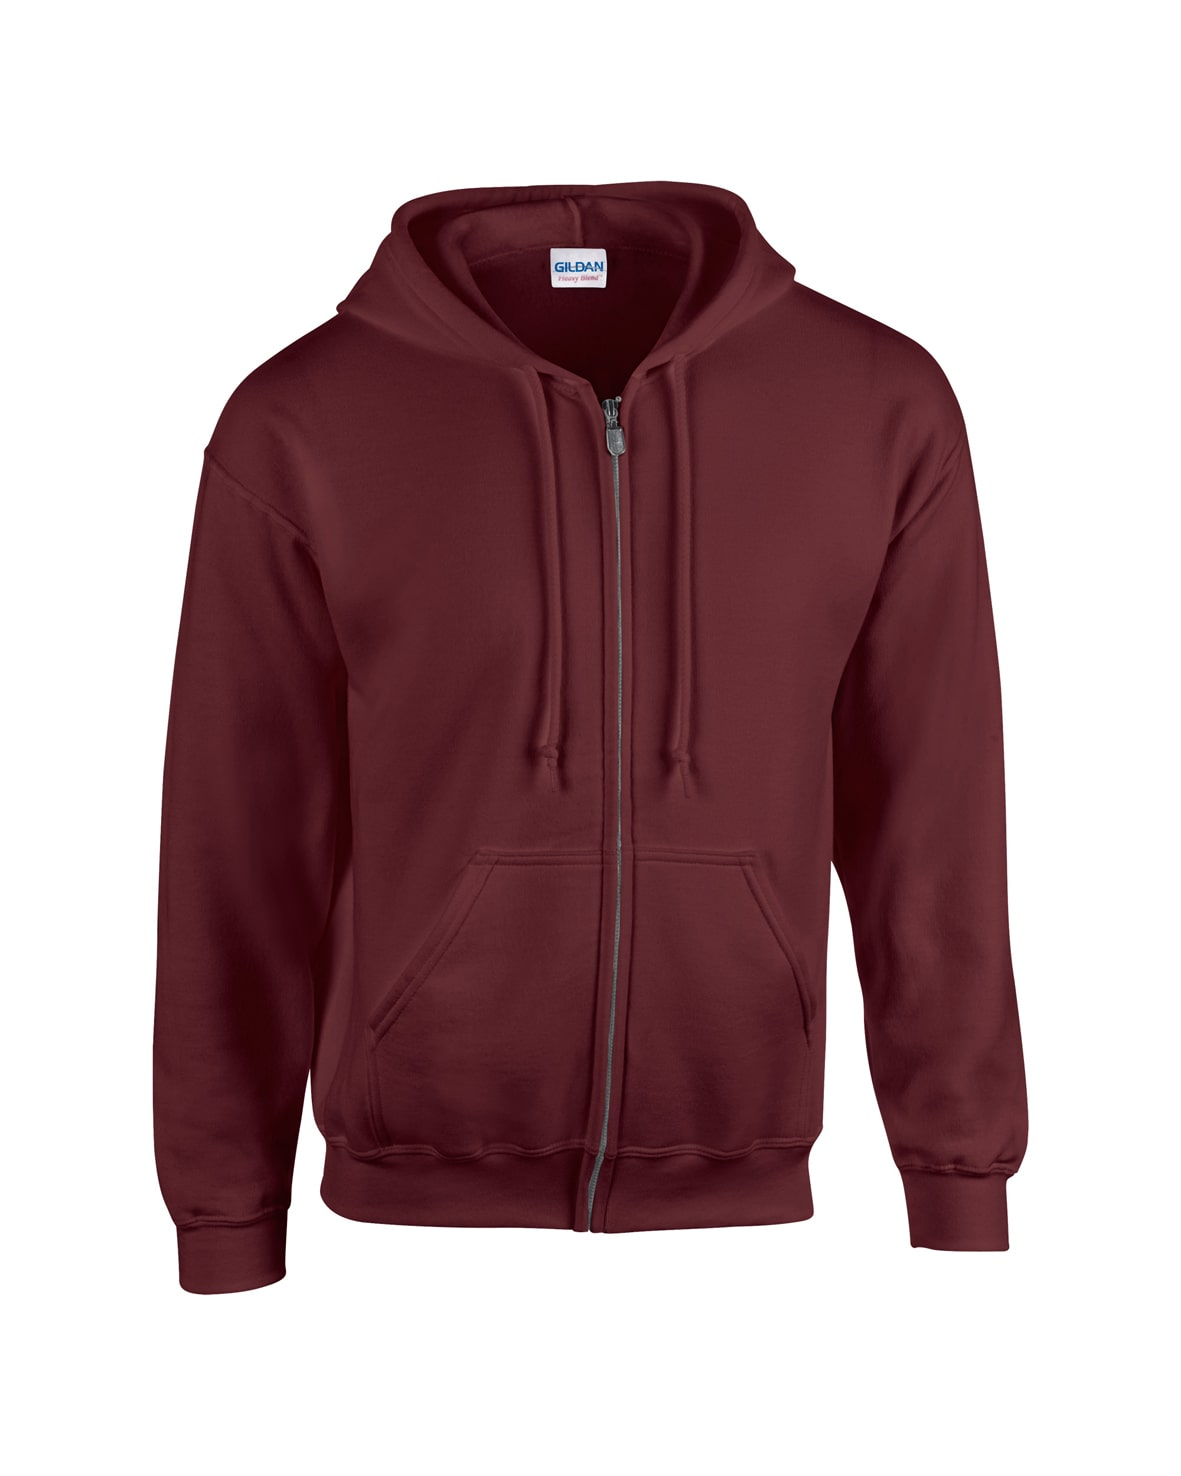 Hardwearing and Comfortable Workwear Hoodies that can be Branded with your Business or Company Logo